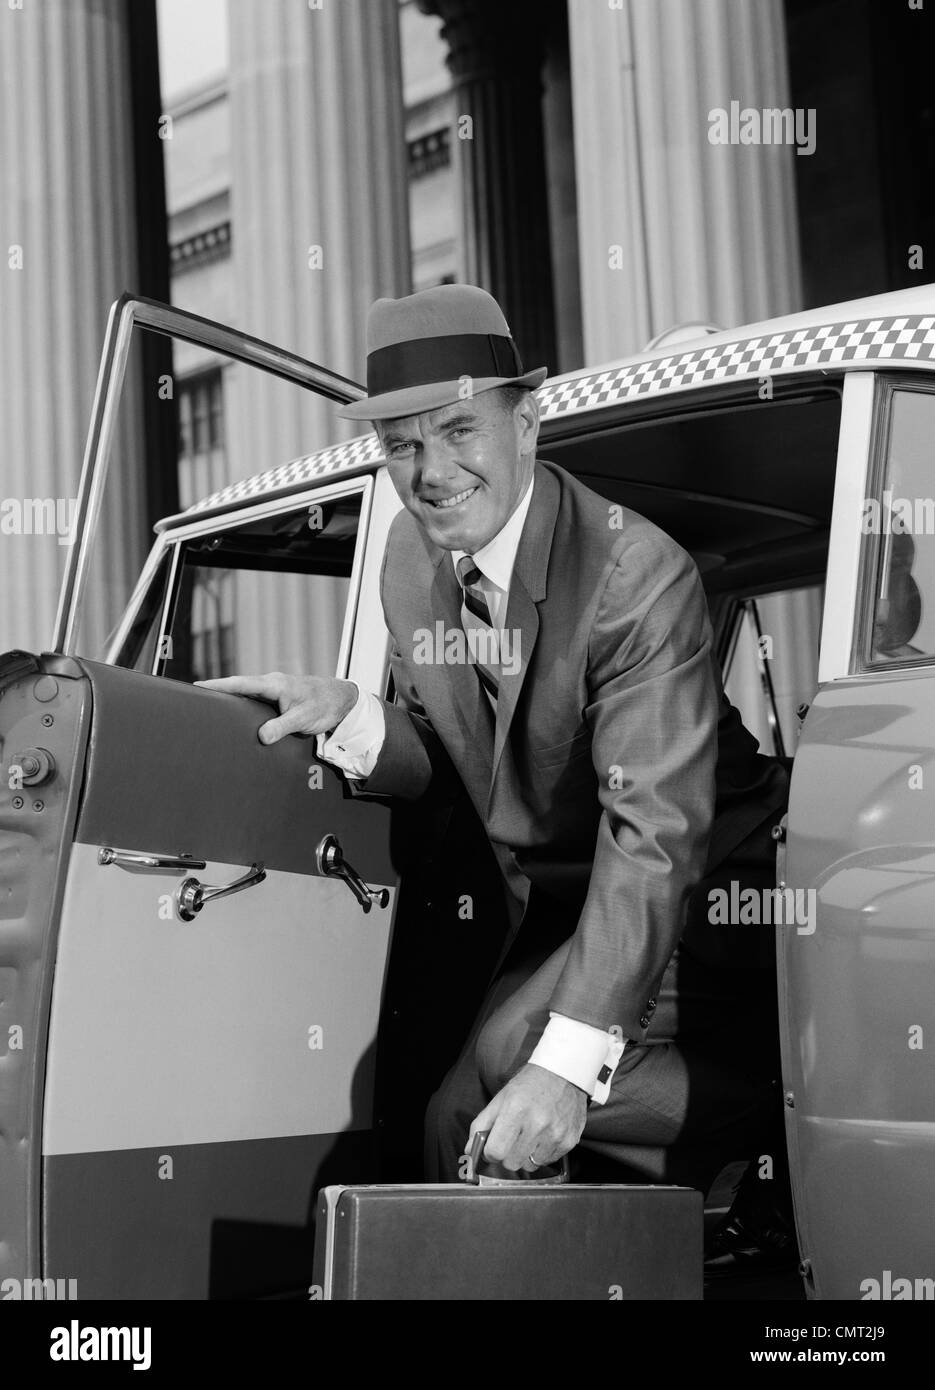 Happy People With Car Black and White Stock Photos & Images